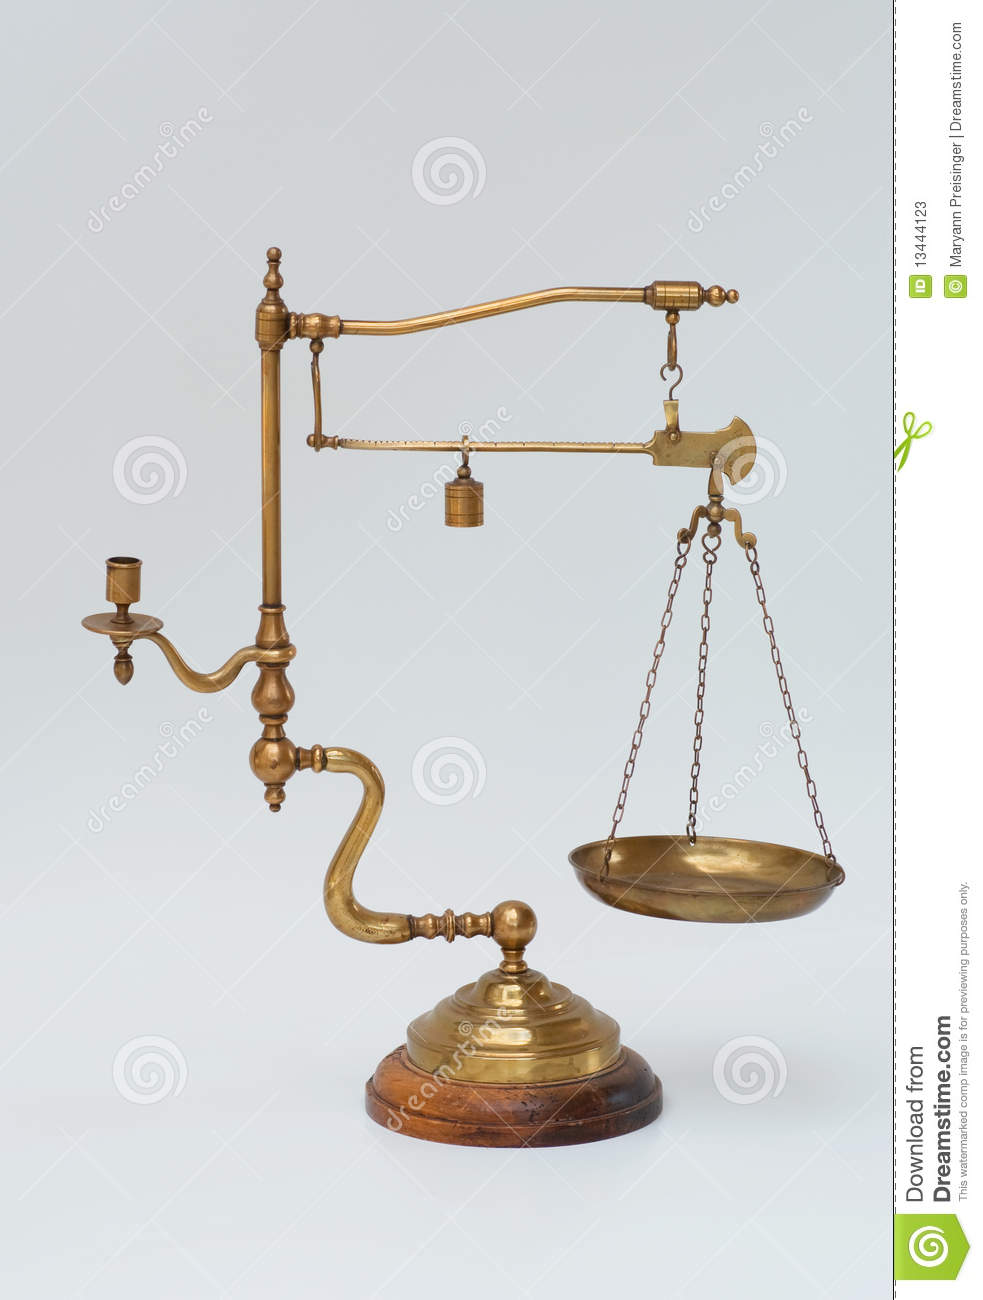 Vintage brass scale with weight and candleholder